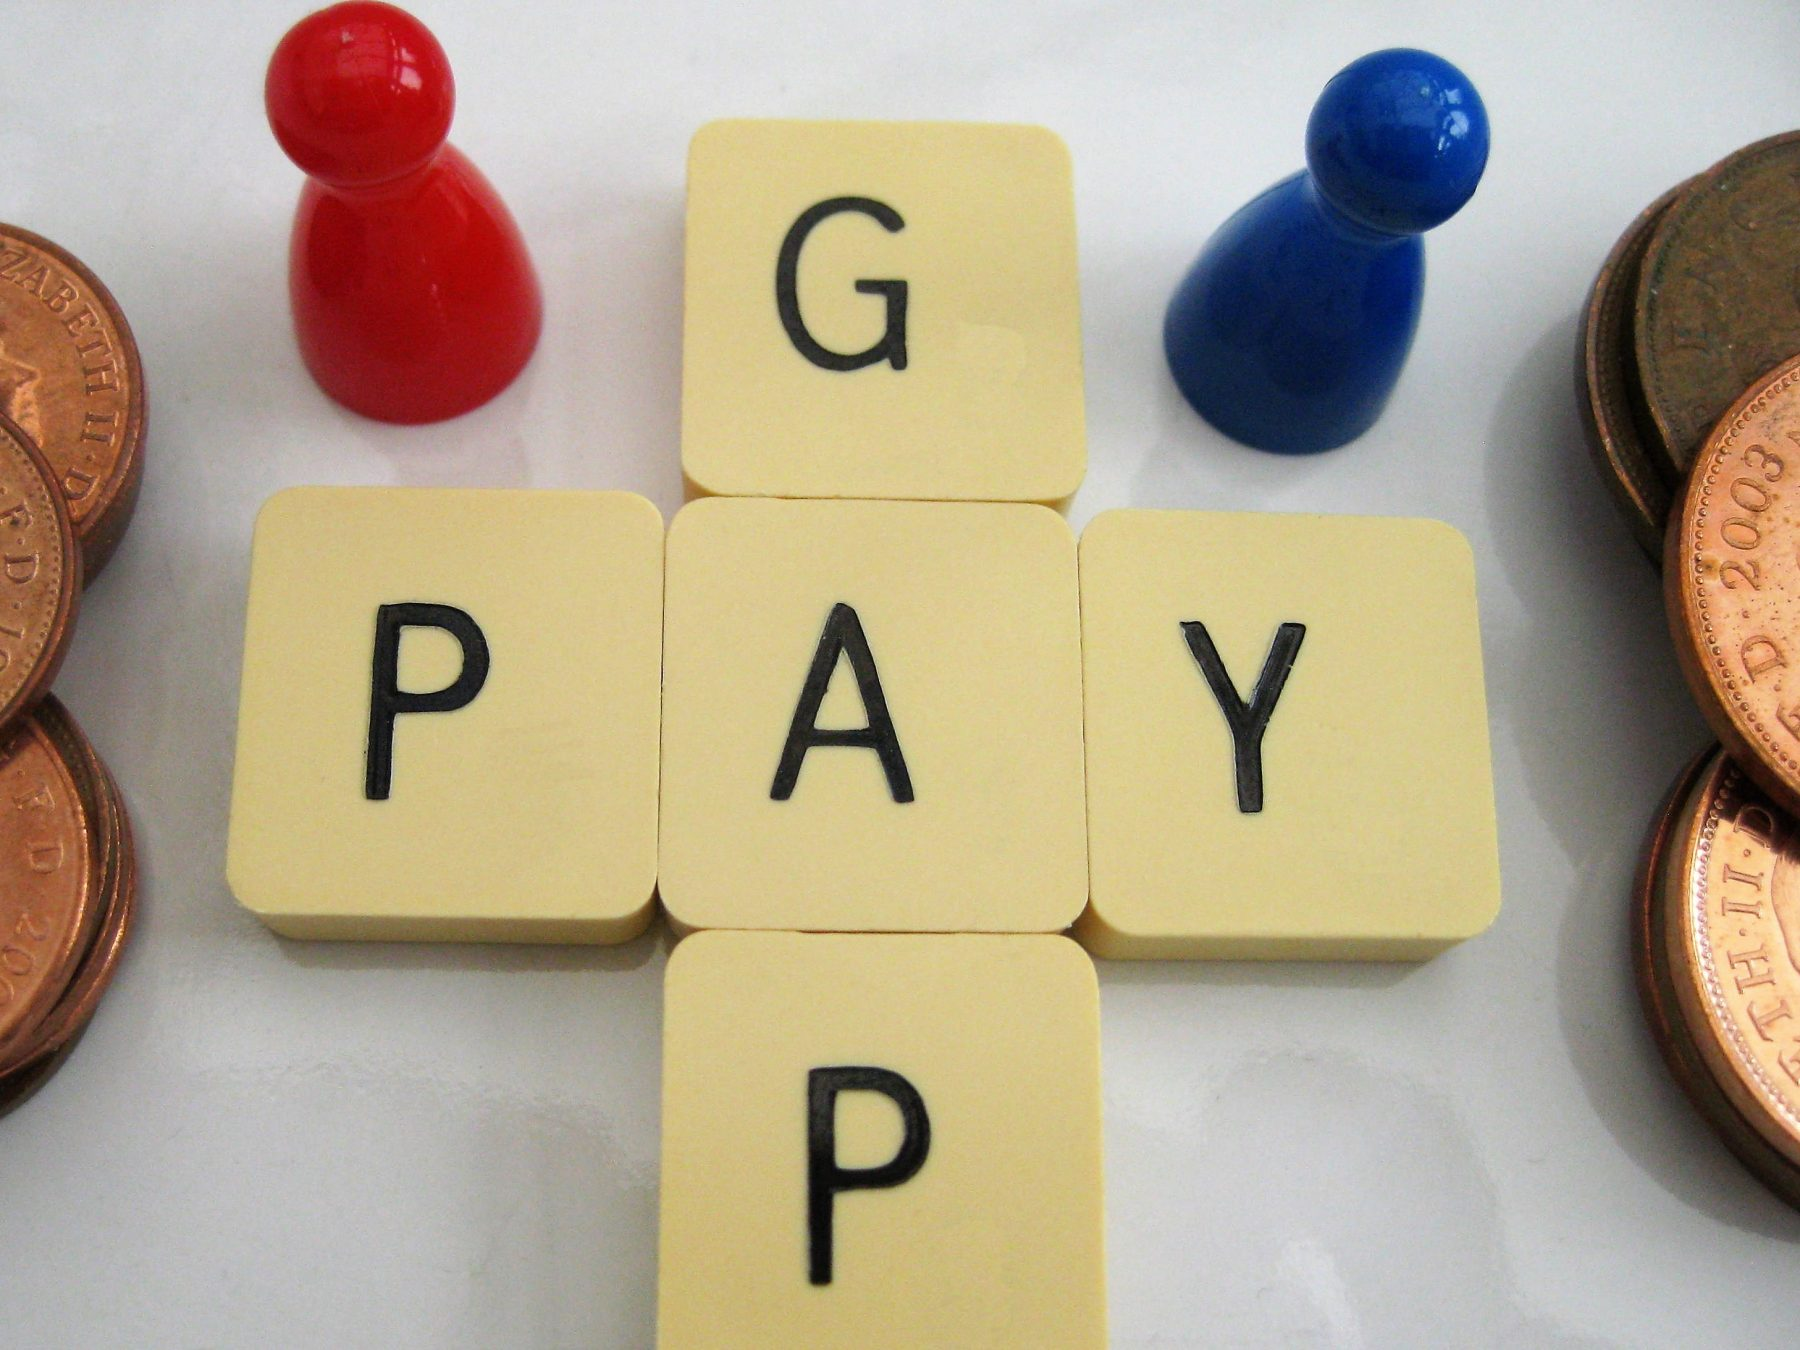 Pay gap spelled out in scrabble tiles